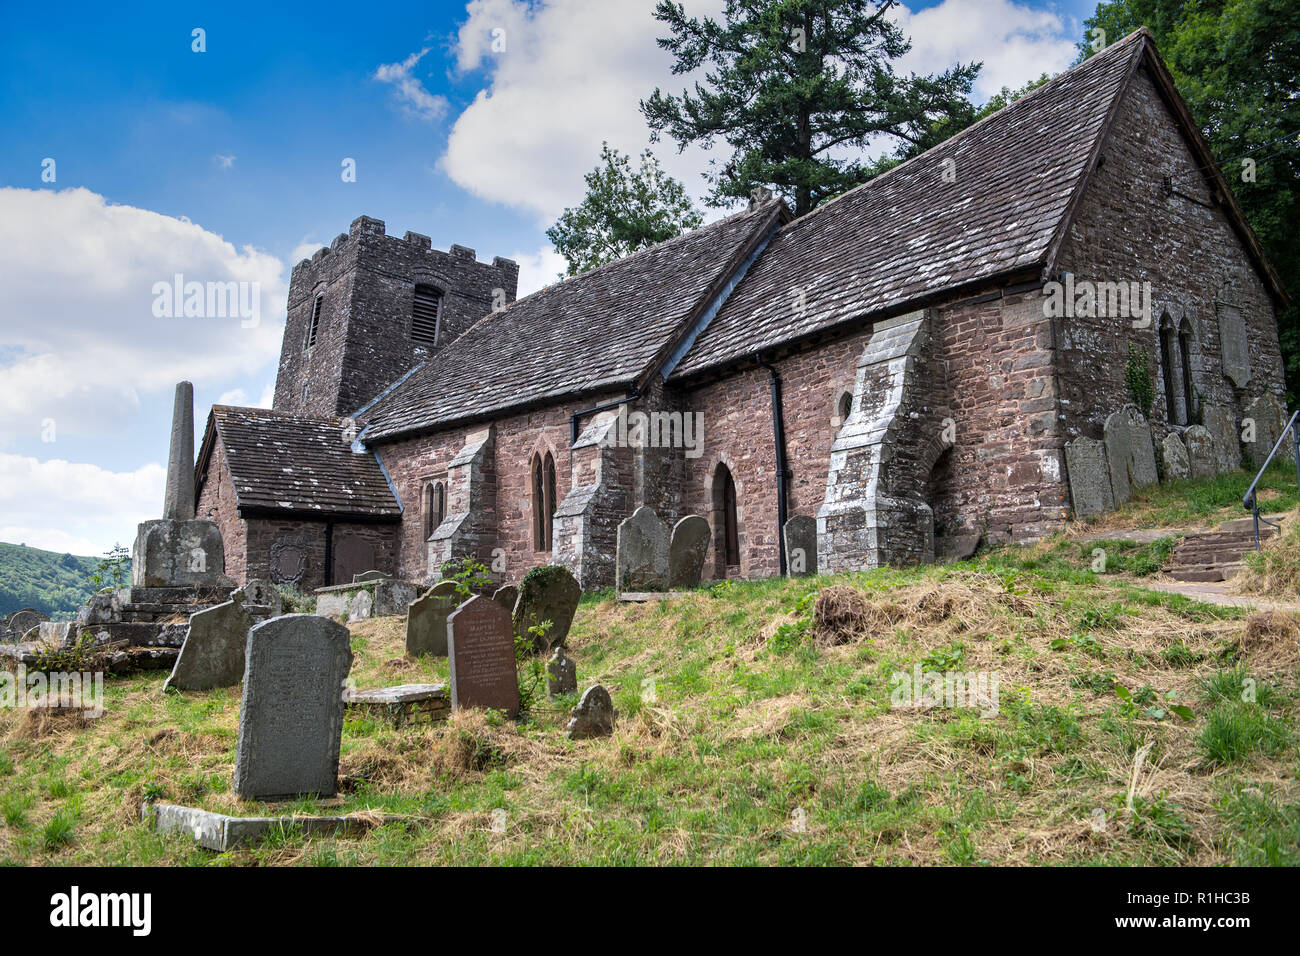 The Church of St Martin, Cwmyoy, Monmouthshire, Wales, famous for its extreme tilt, which was caused by a landslide - Stock Image